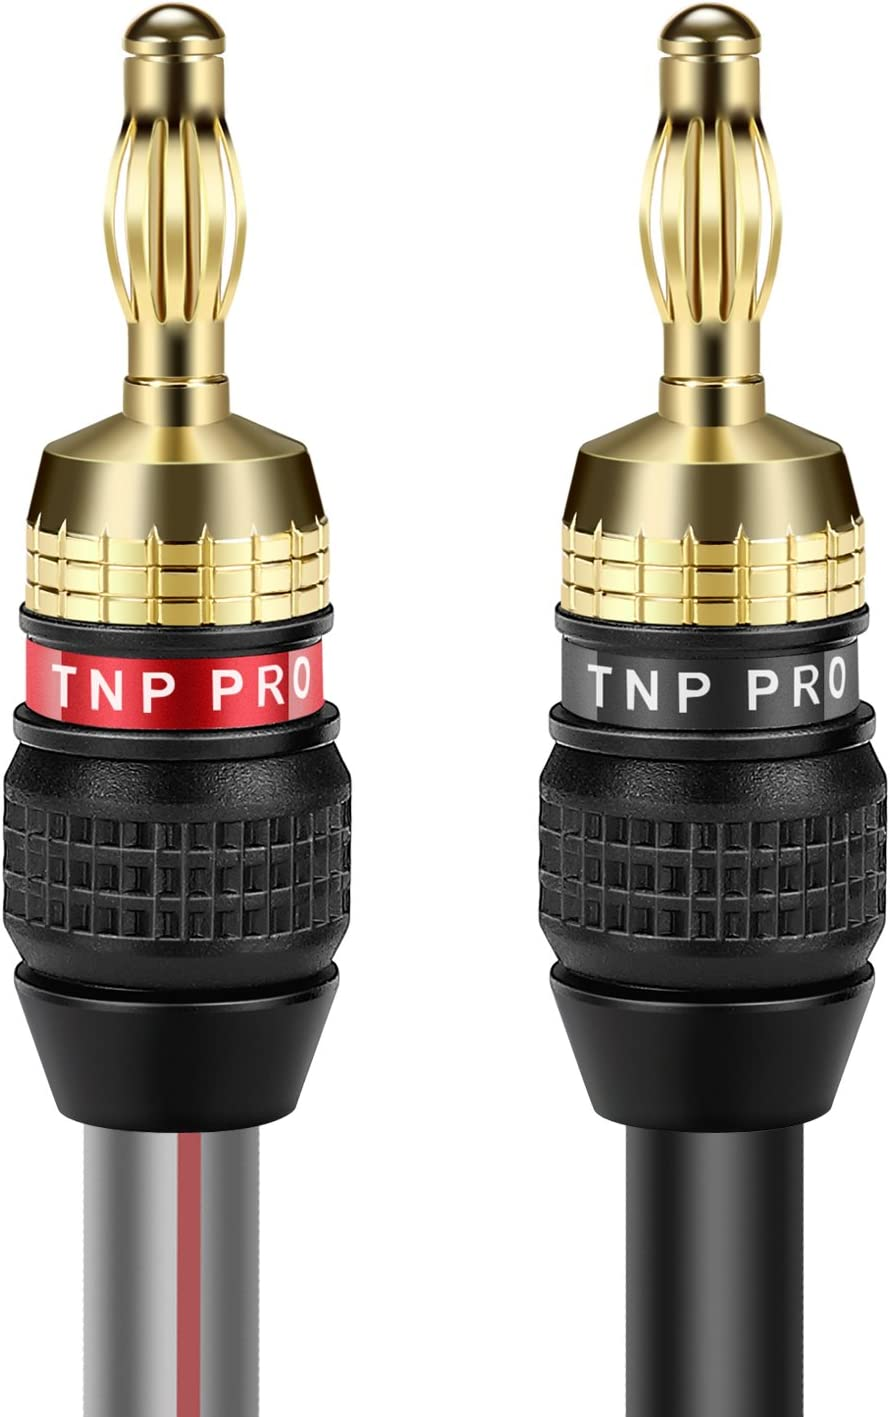 TNP 12 Gauge Speaker Cable with Banana Adapter Plugs High Count Strand 12 AWG Electrical Speaker Wire Connector Cord 24K Gold Plated /& Corrosion Resistant for Home Theater System 3M